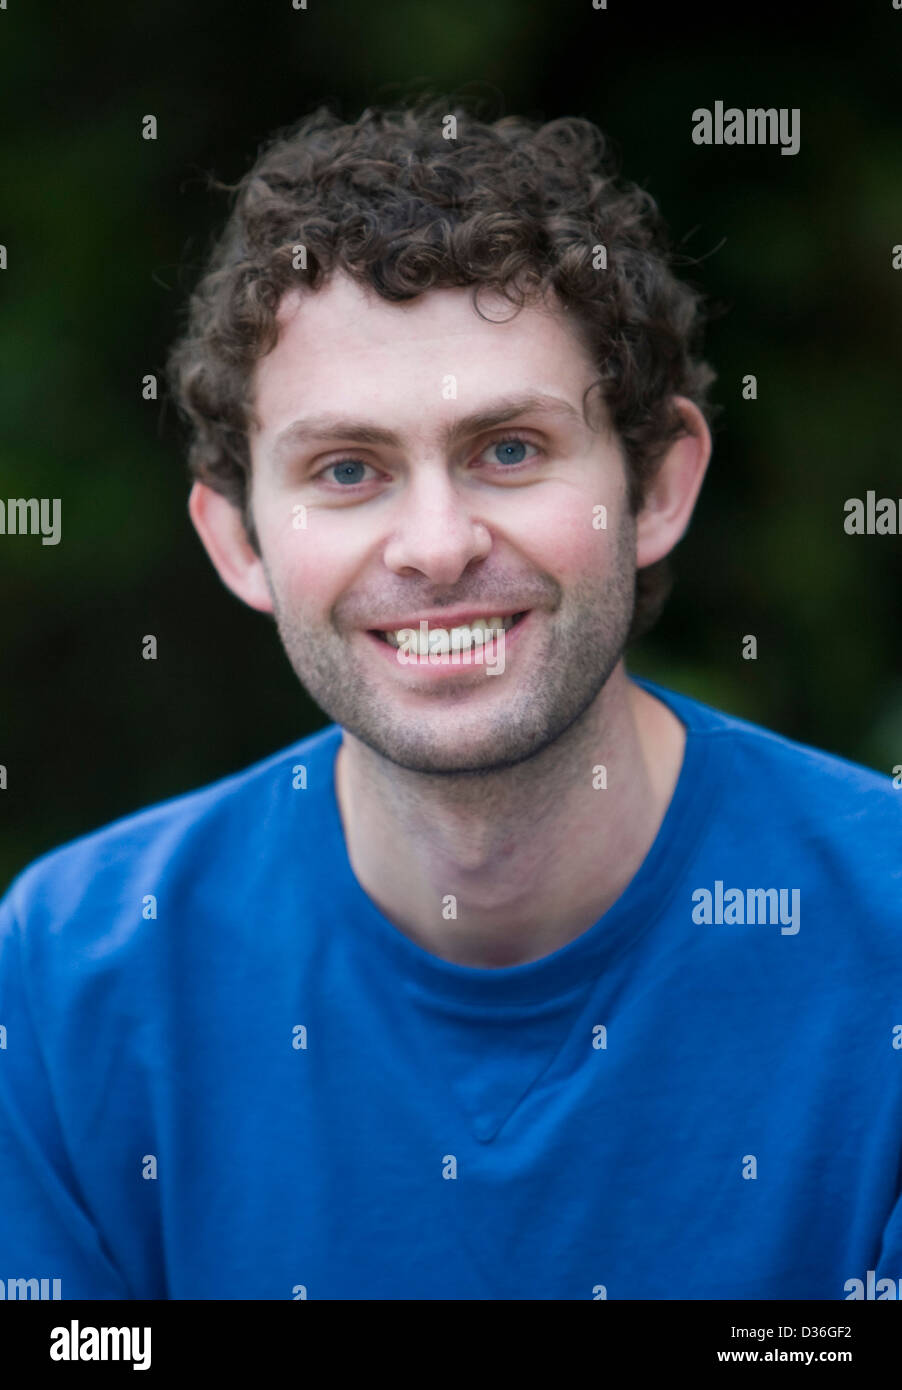 04.11.08. Ross Raisin, finalist in the Dylan Thomas Prize for young writers. - Stock Image